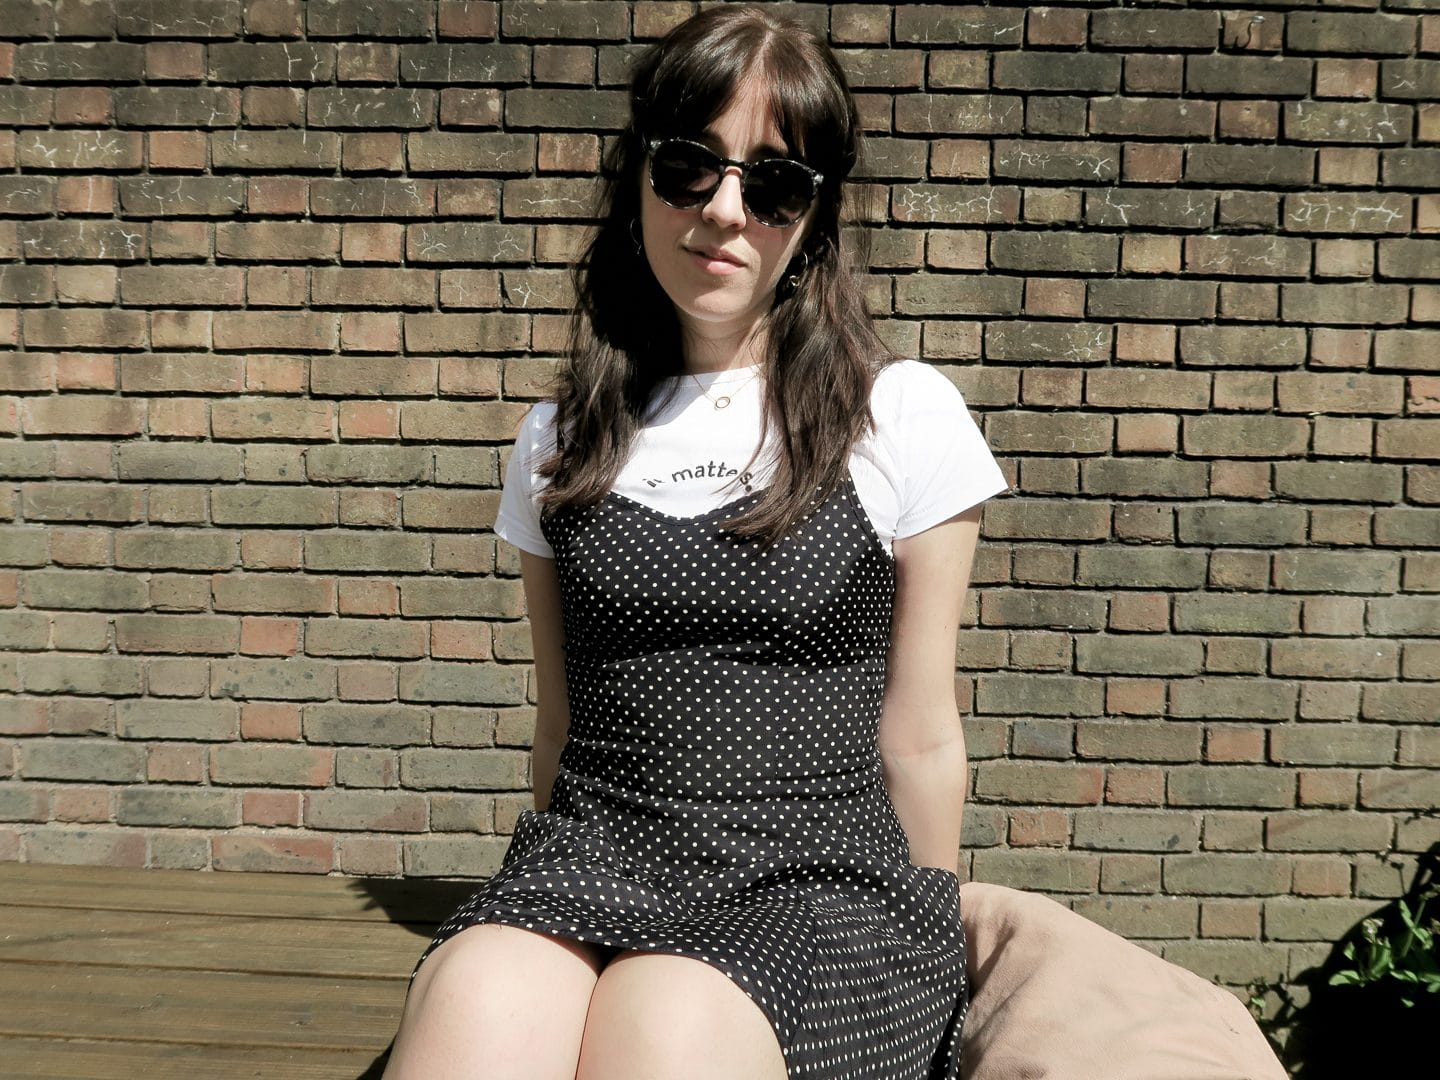 Besma sitting on outdoor table wearing sunglasses, white t-shirt and black dotted dress